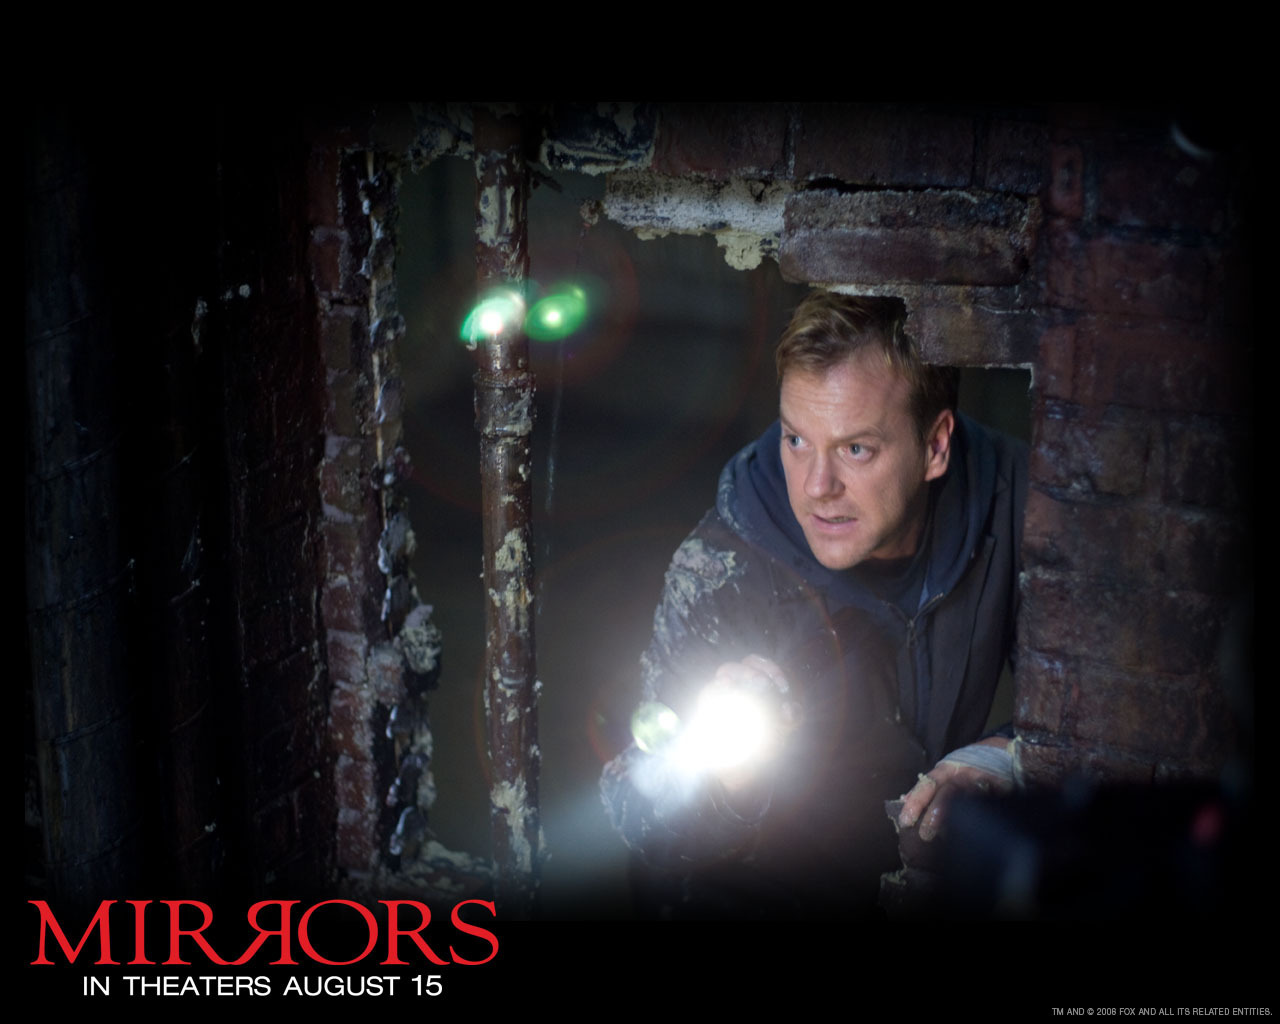 Mirrors horror movies wallpaper 7085477 fanpop for Mirror horror movie